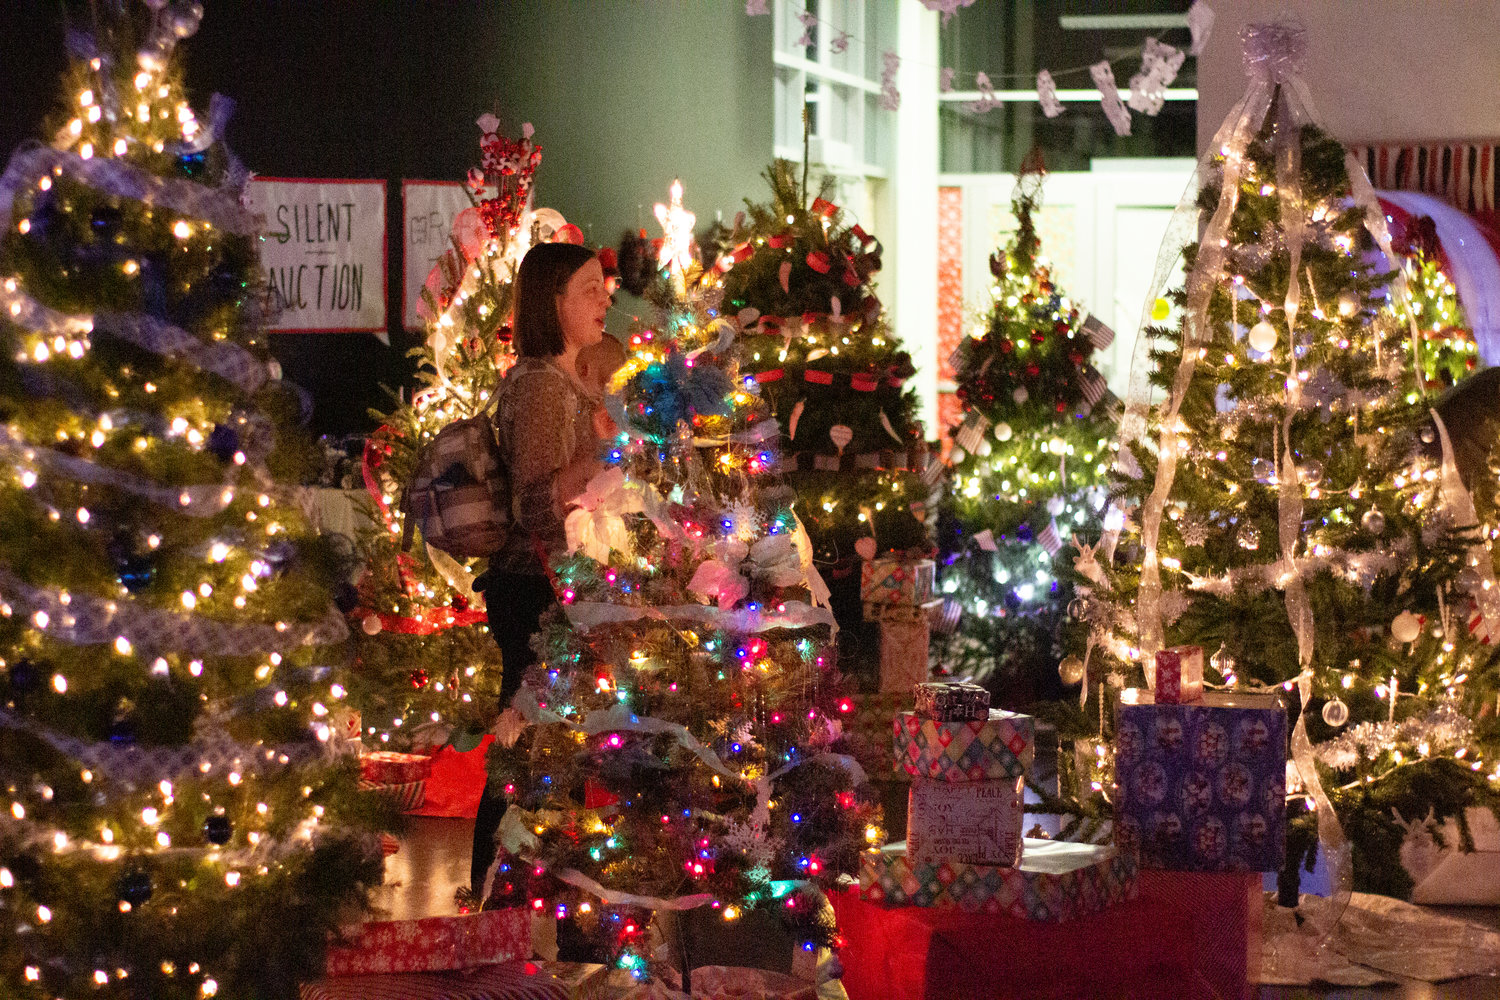 Several of the spectacular trees at the 2018 Festival of Trees at Centennial High School